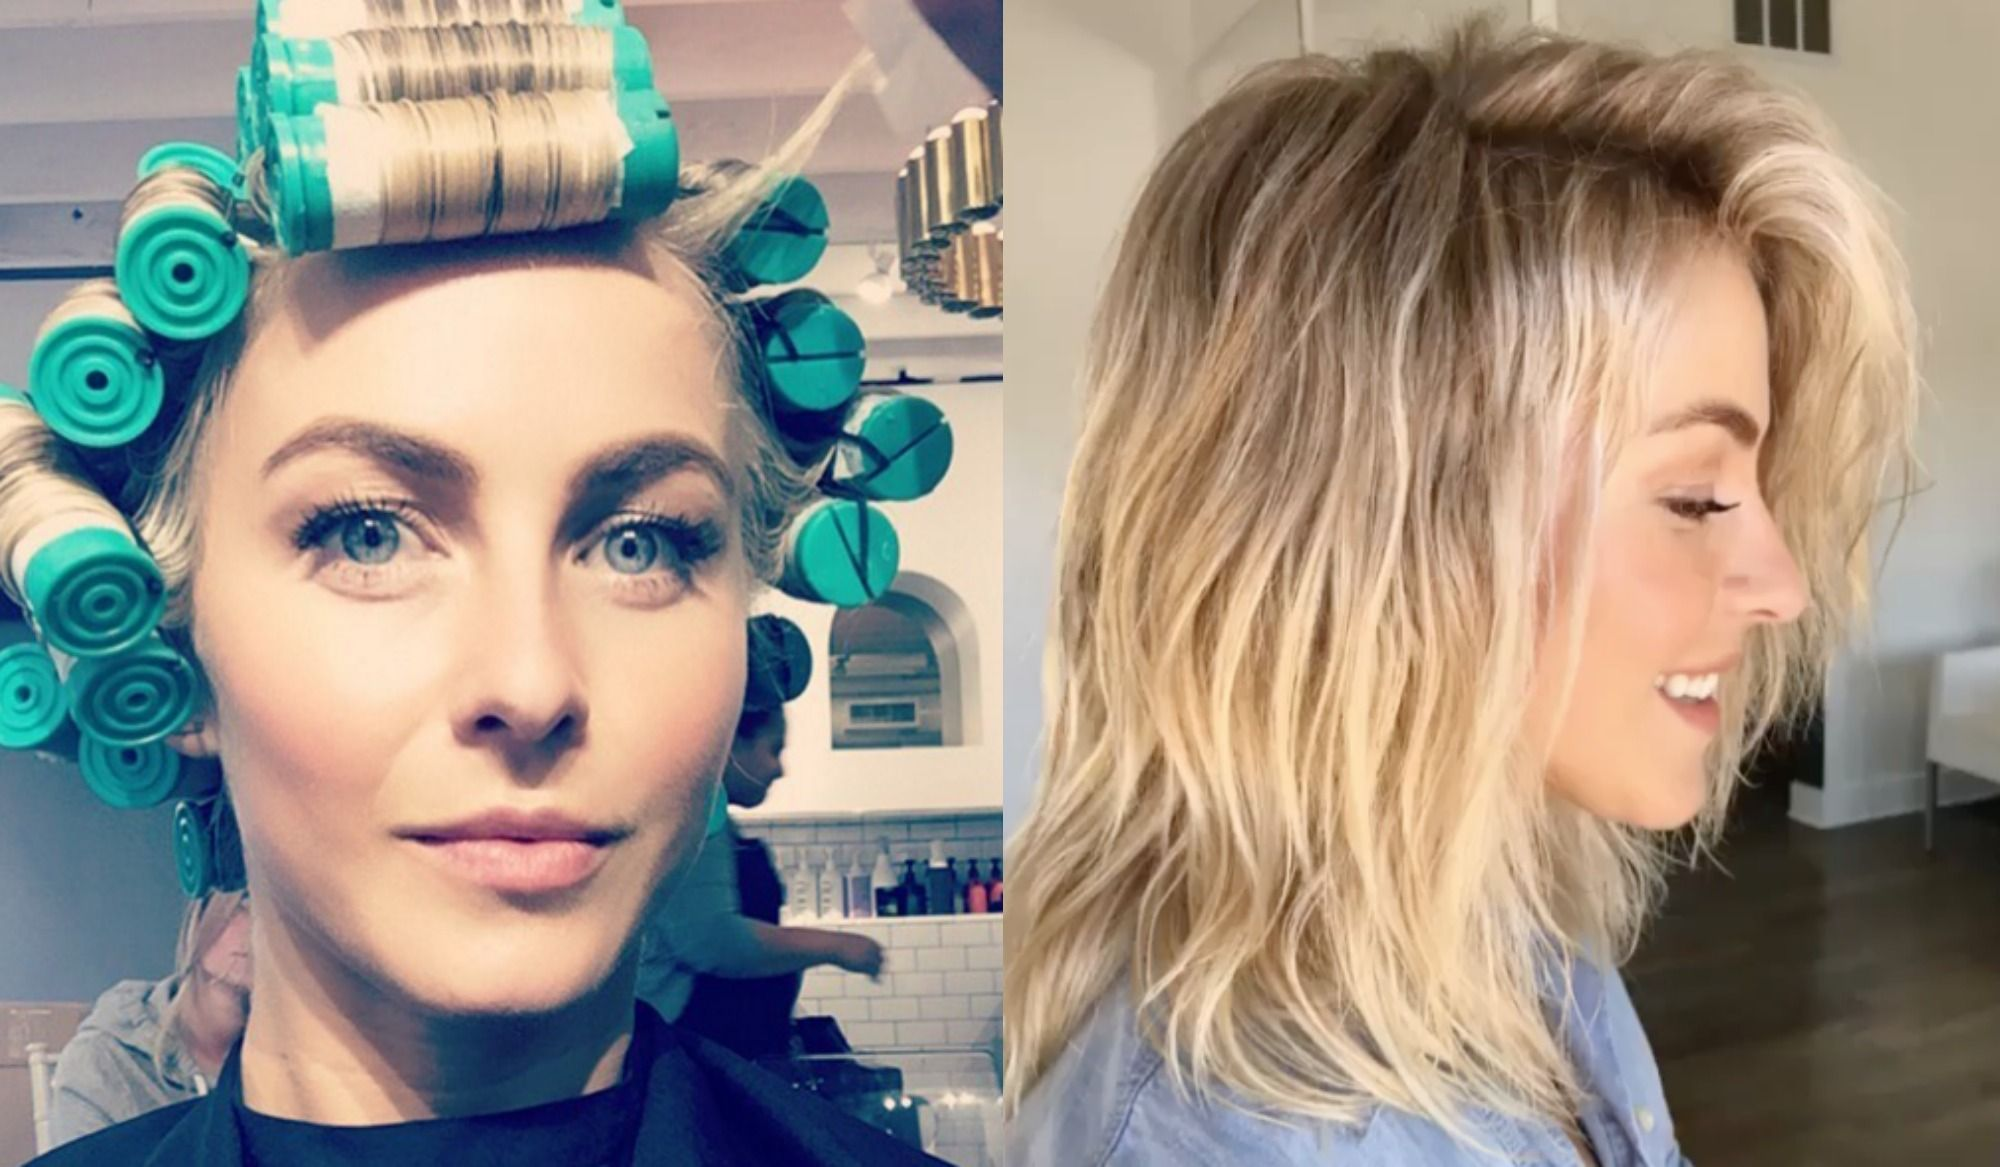 Julianne Hough S New Hairstyle Is Changing The Way We Think Of Perms